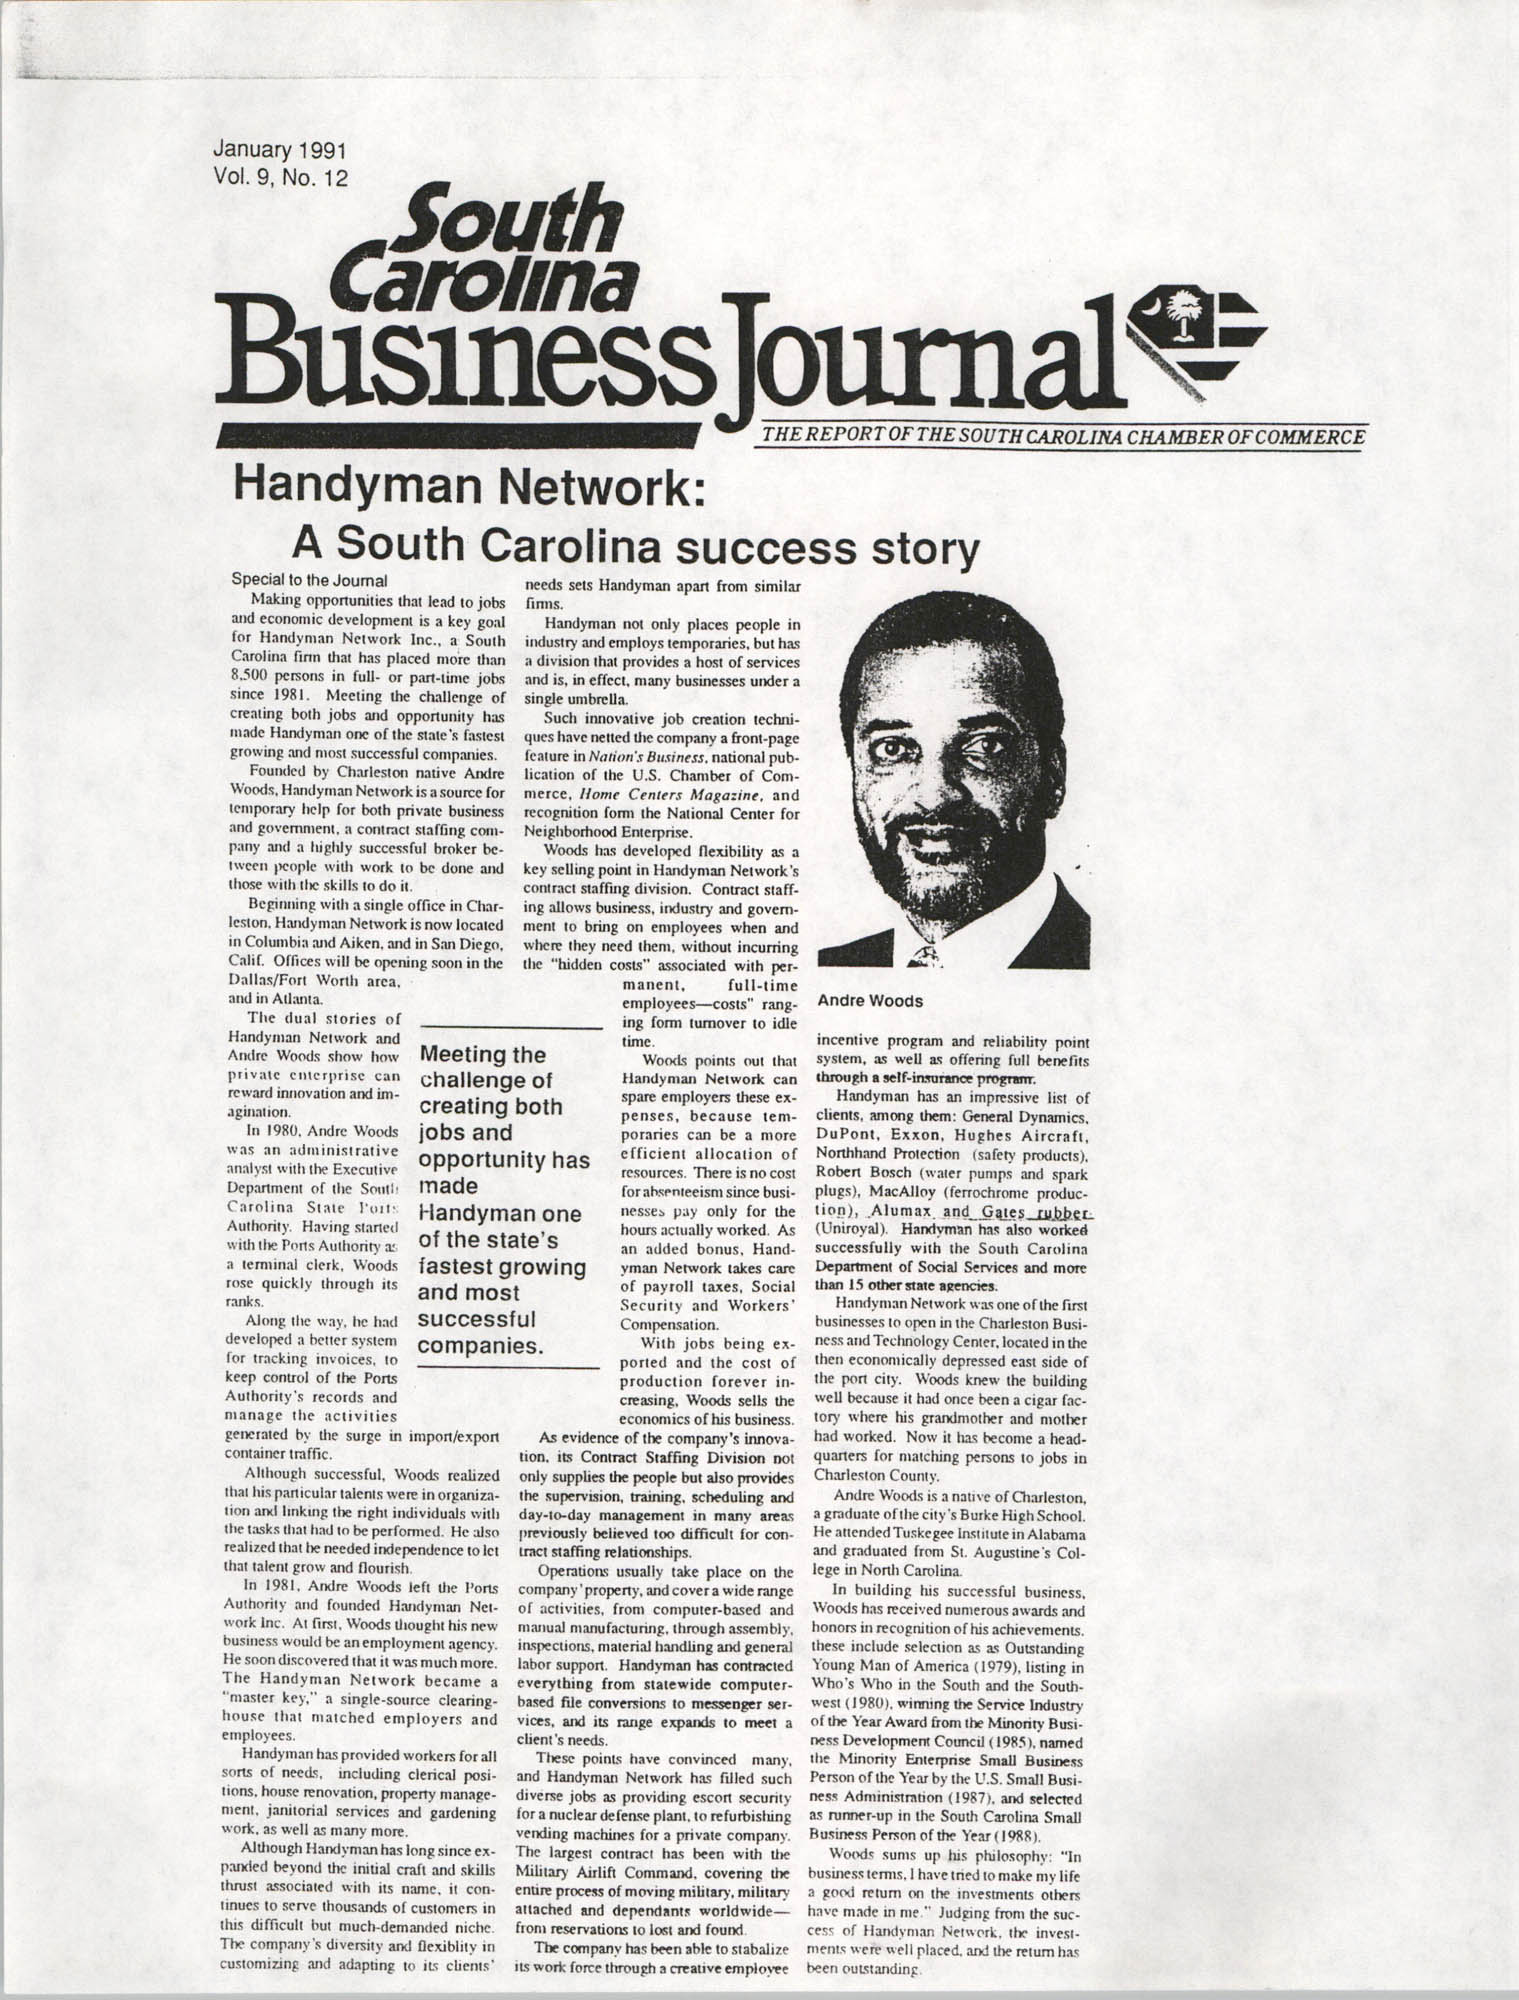 Handyman Network, Inc., South Carolina Business Journal, Vol. 9, No. 12, January 1991